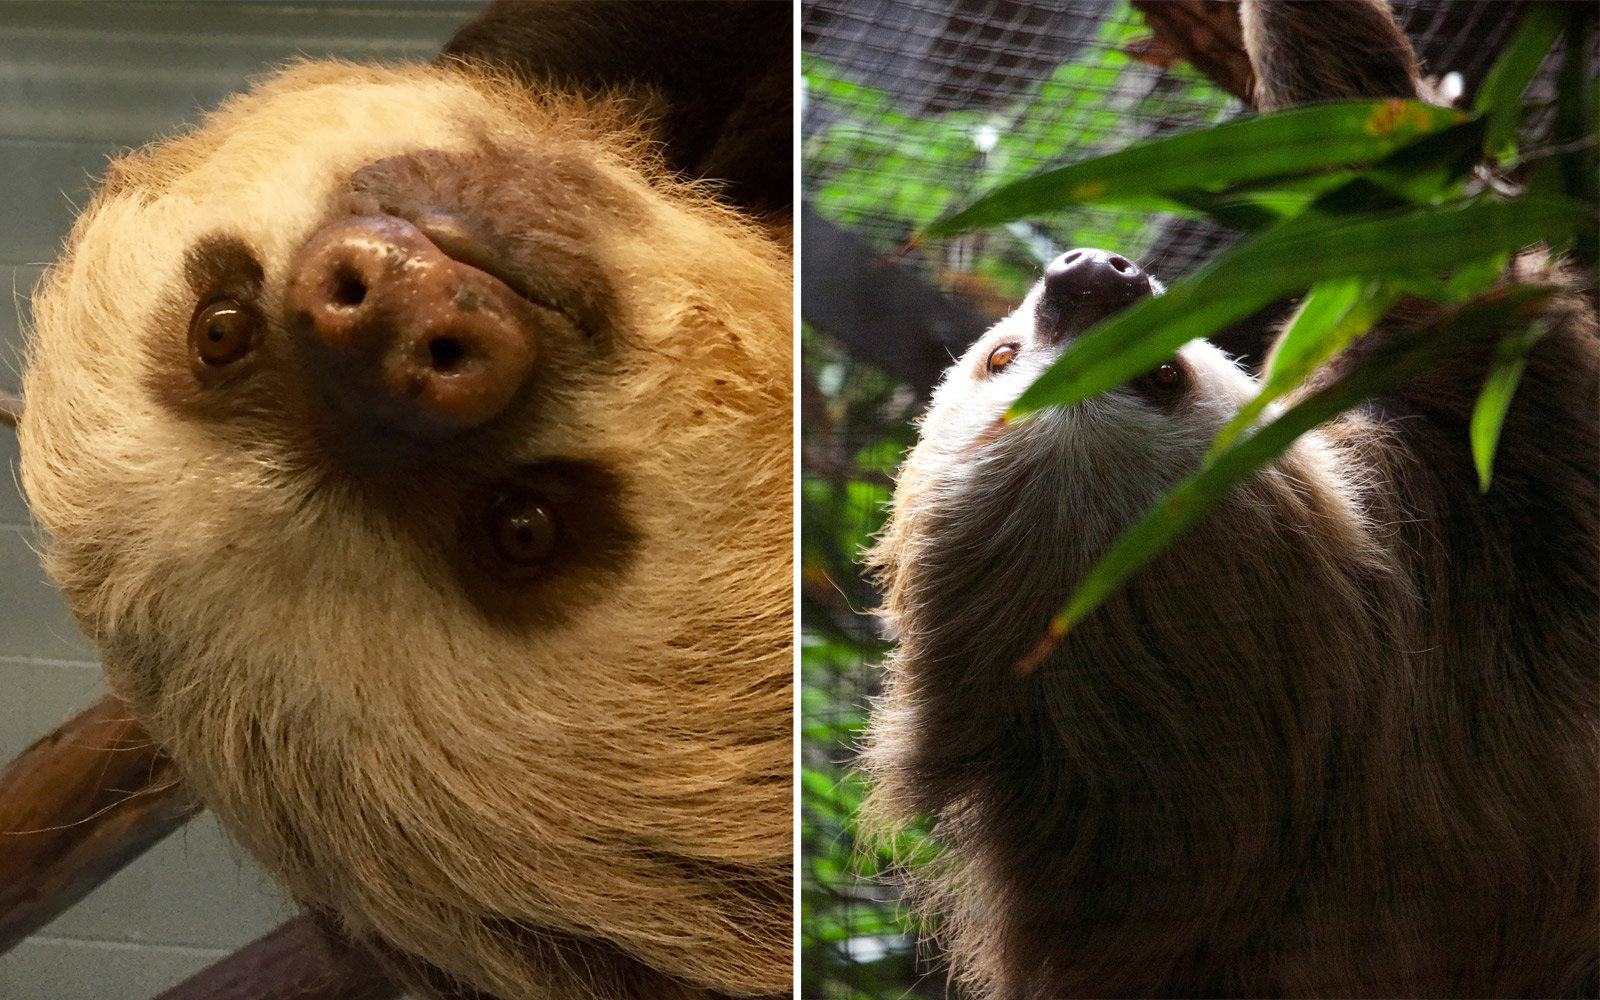 Jabba and Hope, the two toed sloths at Connecticut's Beardsley Zoo